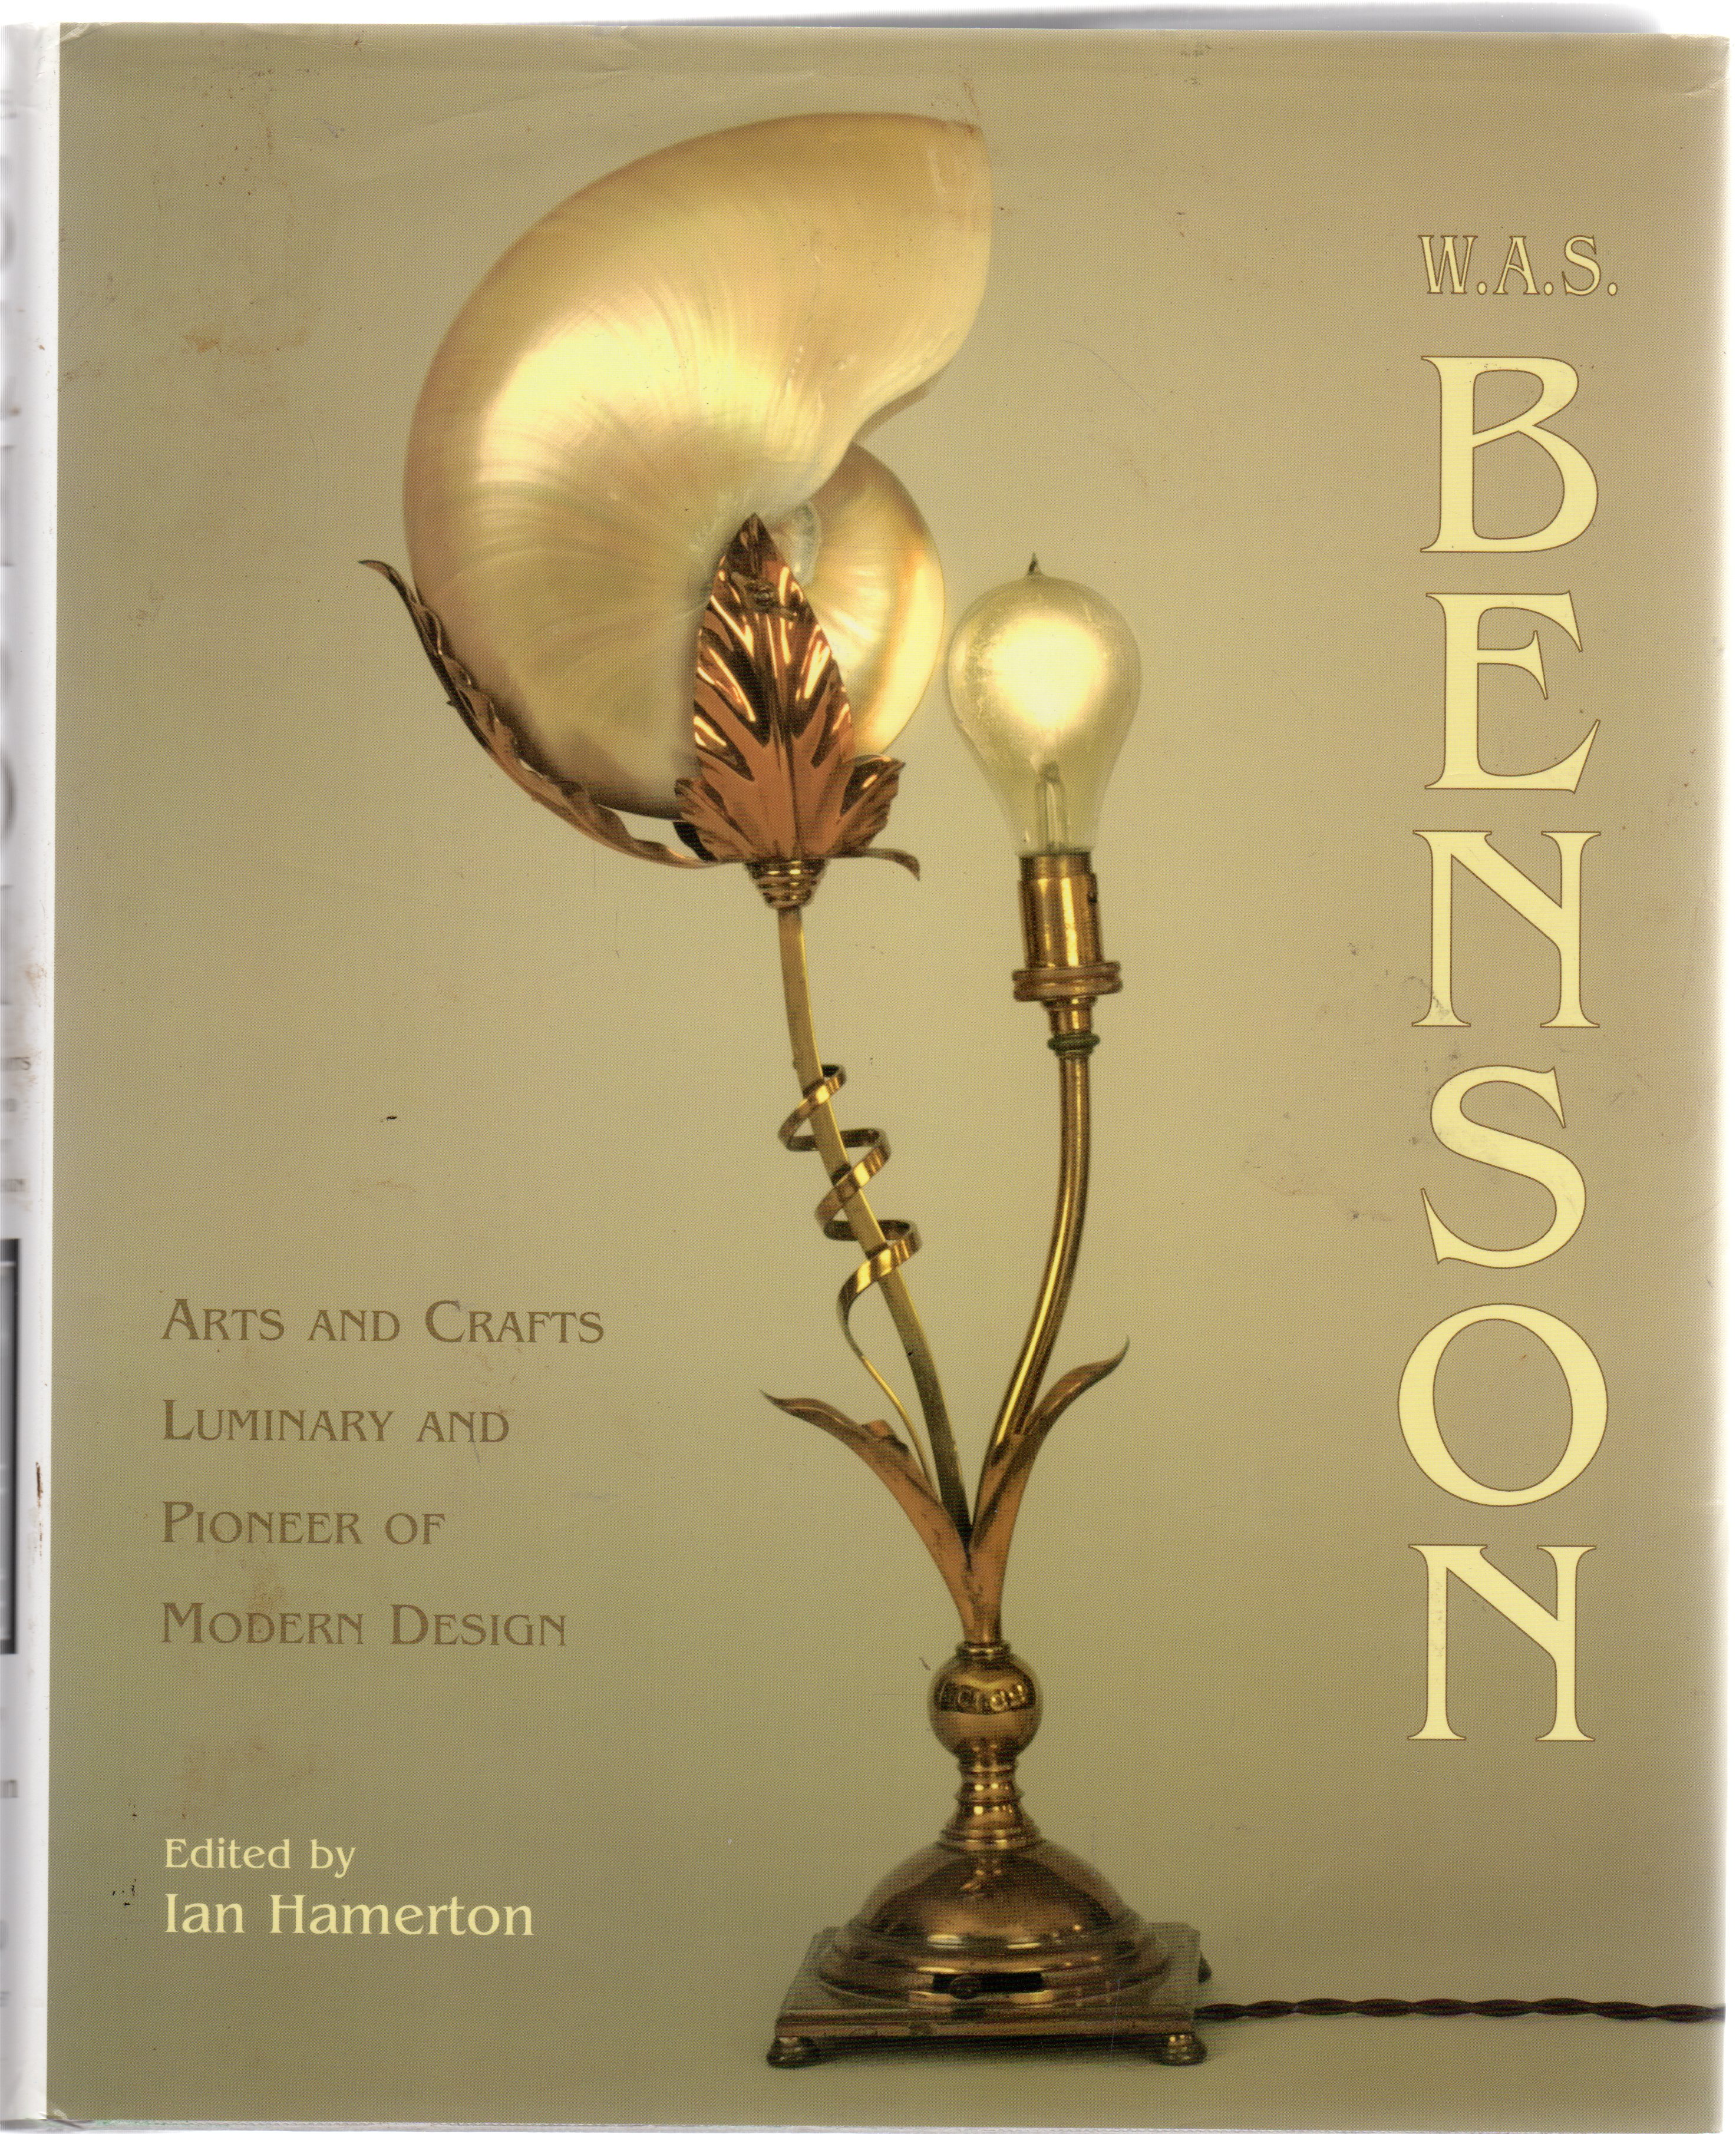 Image for W. A. S. Benson : Arts And Crafts Luminary And Pioneer Of Modern Design